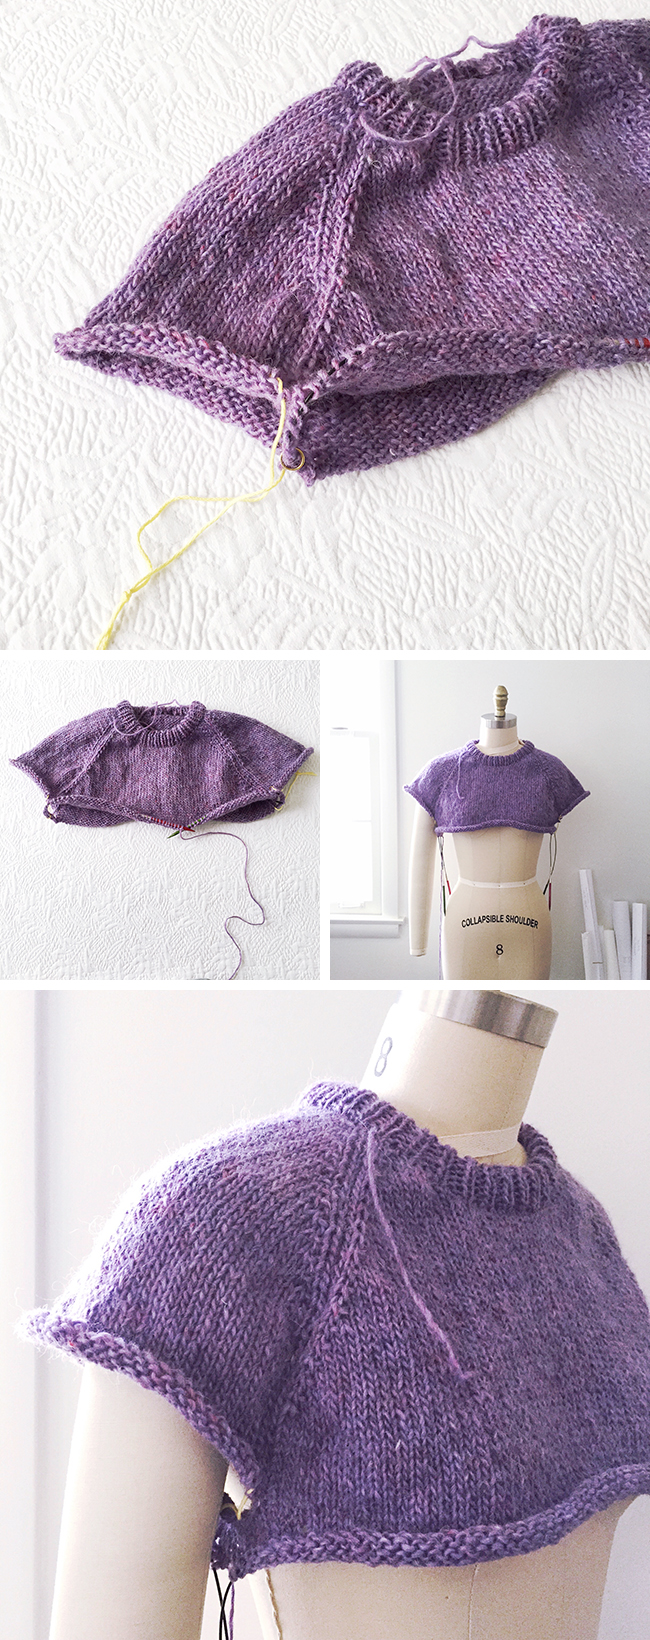 3f7fb967a4 how to improvise a top-down sweater Archives - Fringe Association